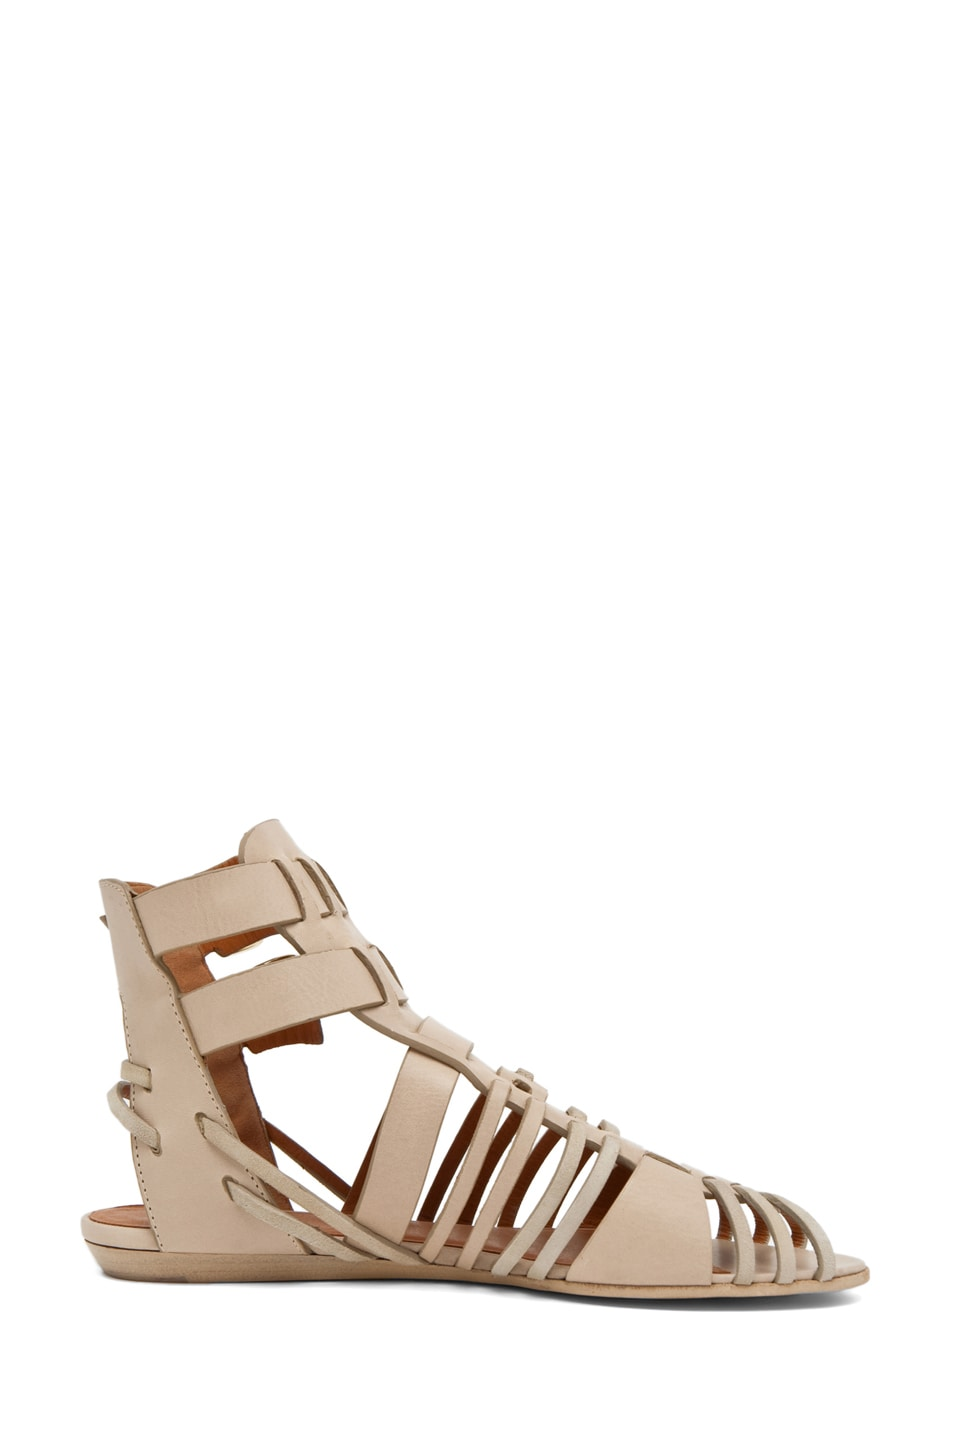 Image 5 of GIVENCHY Gladiator Sandal in Sand